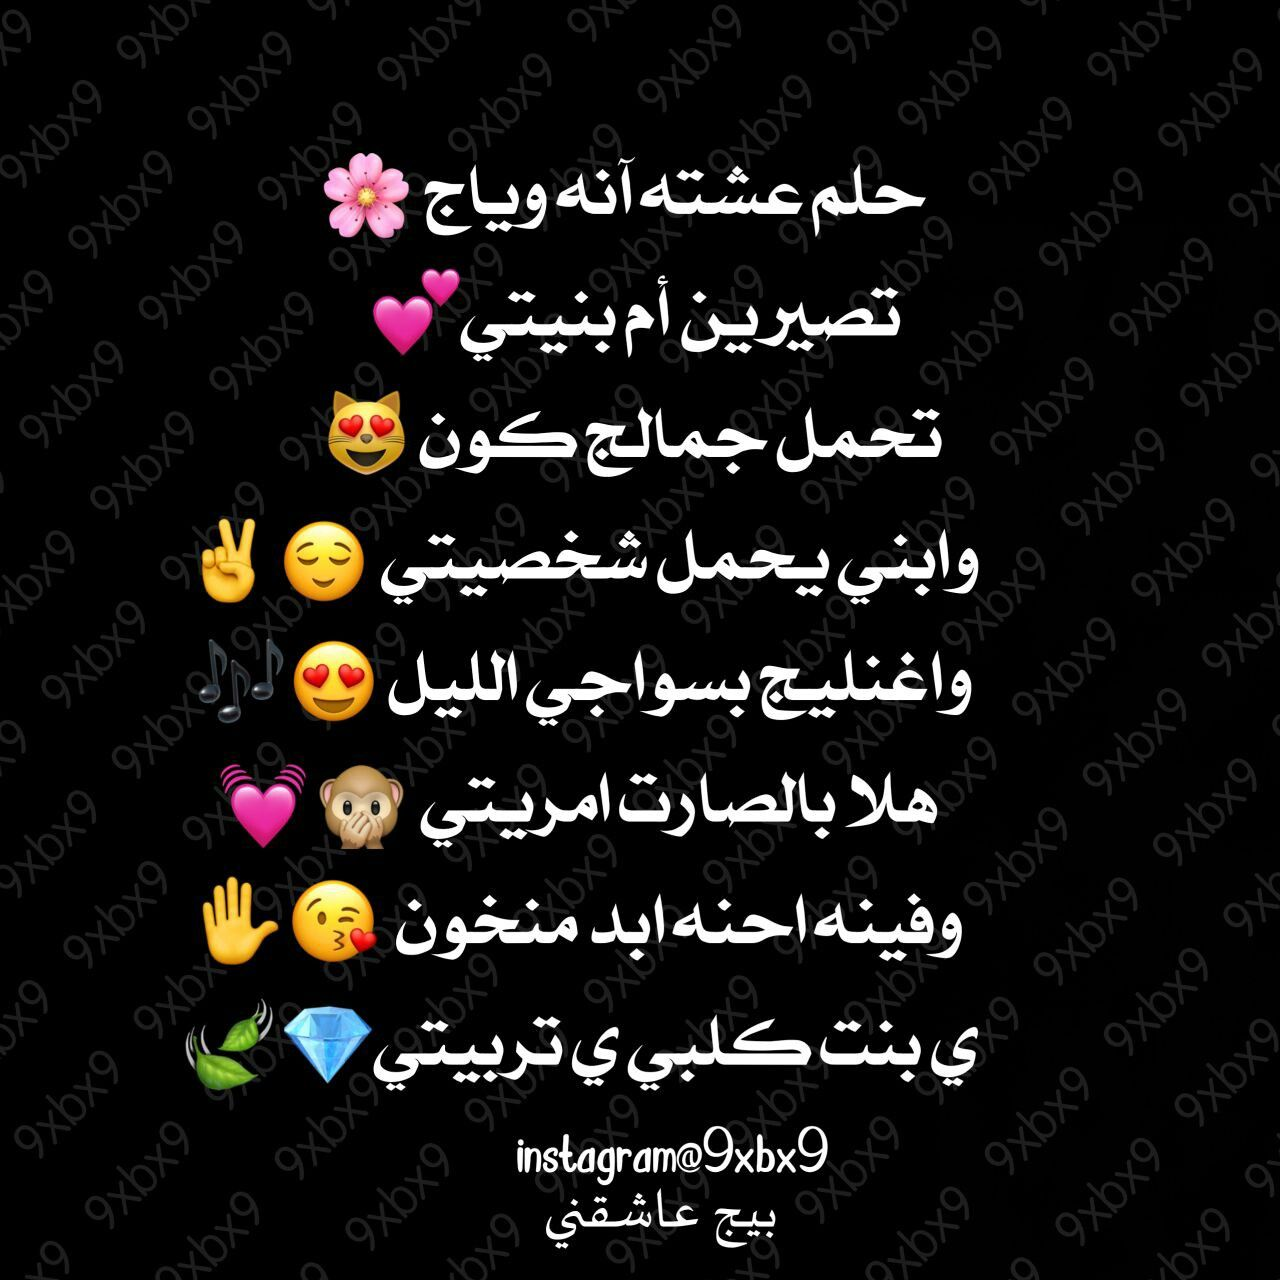 غزل عراقي حب شعر Cool words, Arabic english quotes